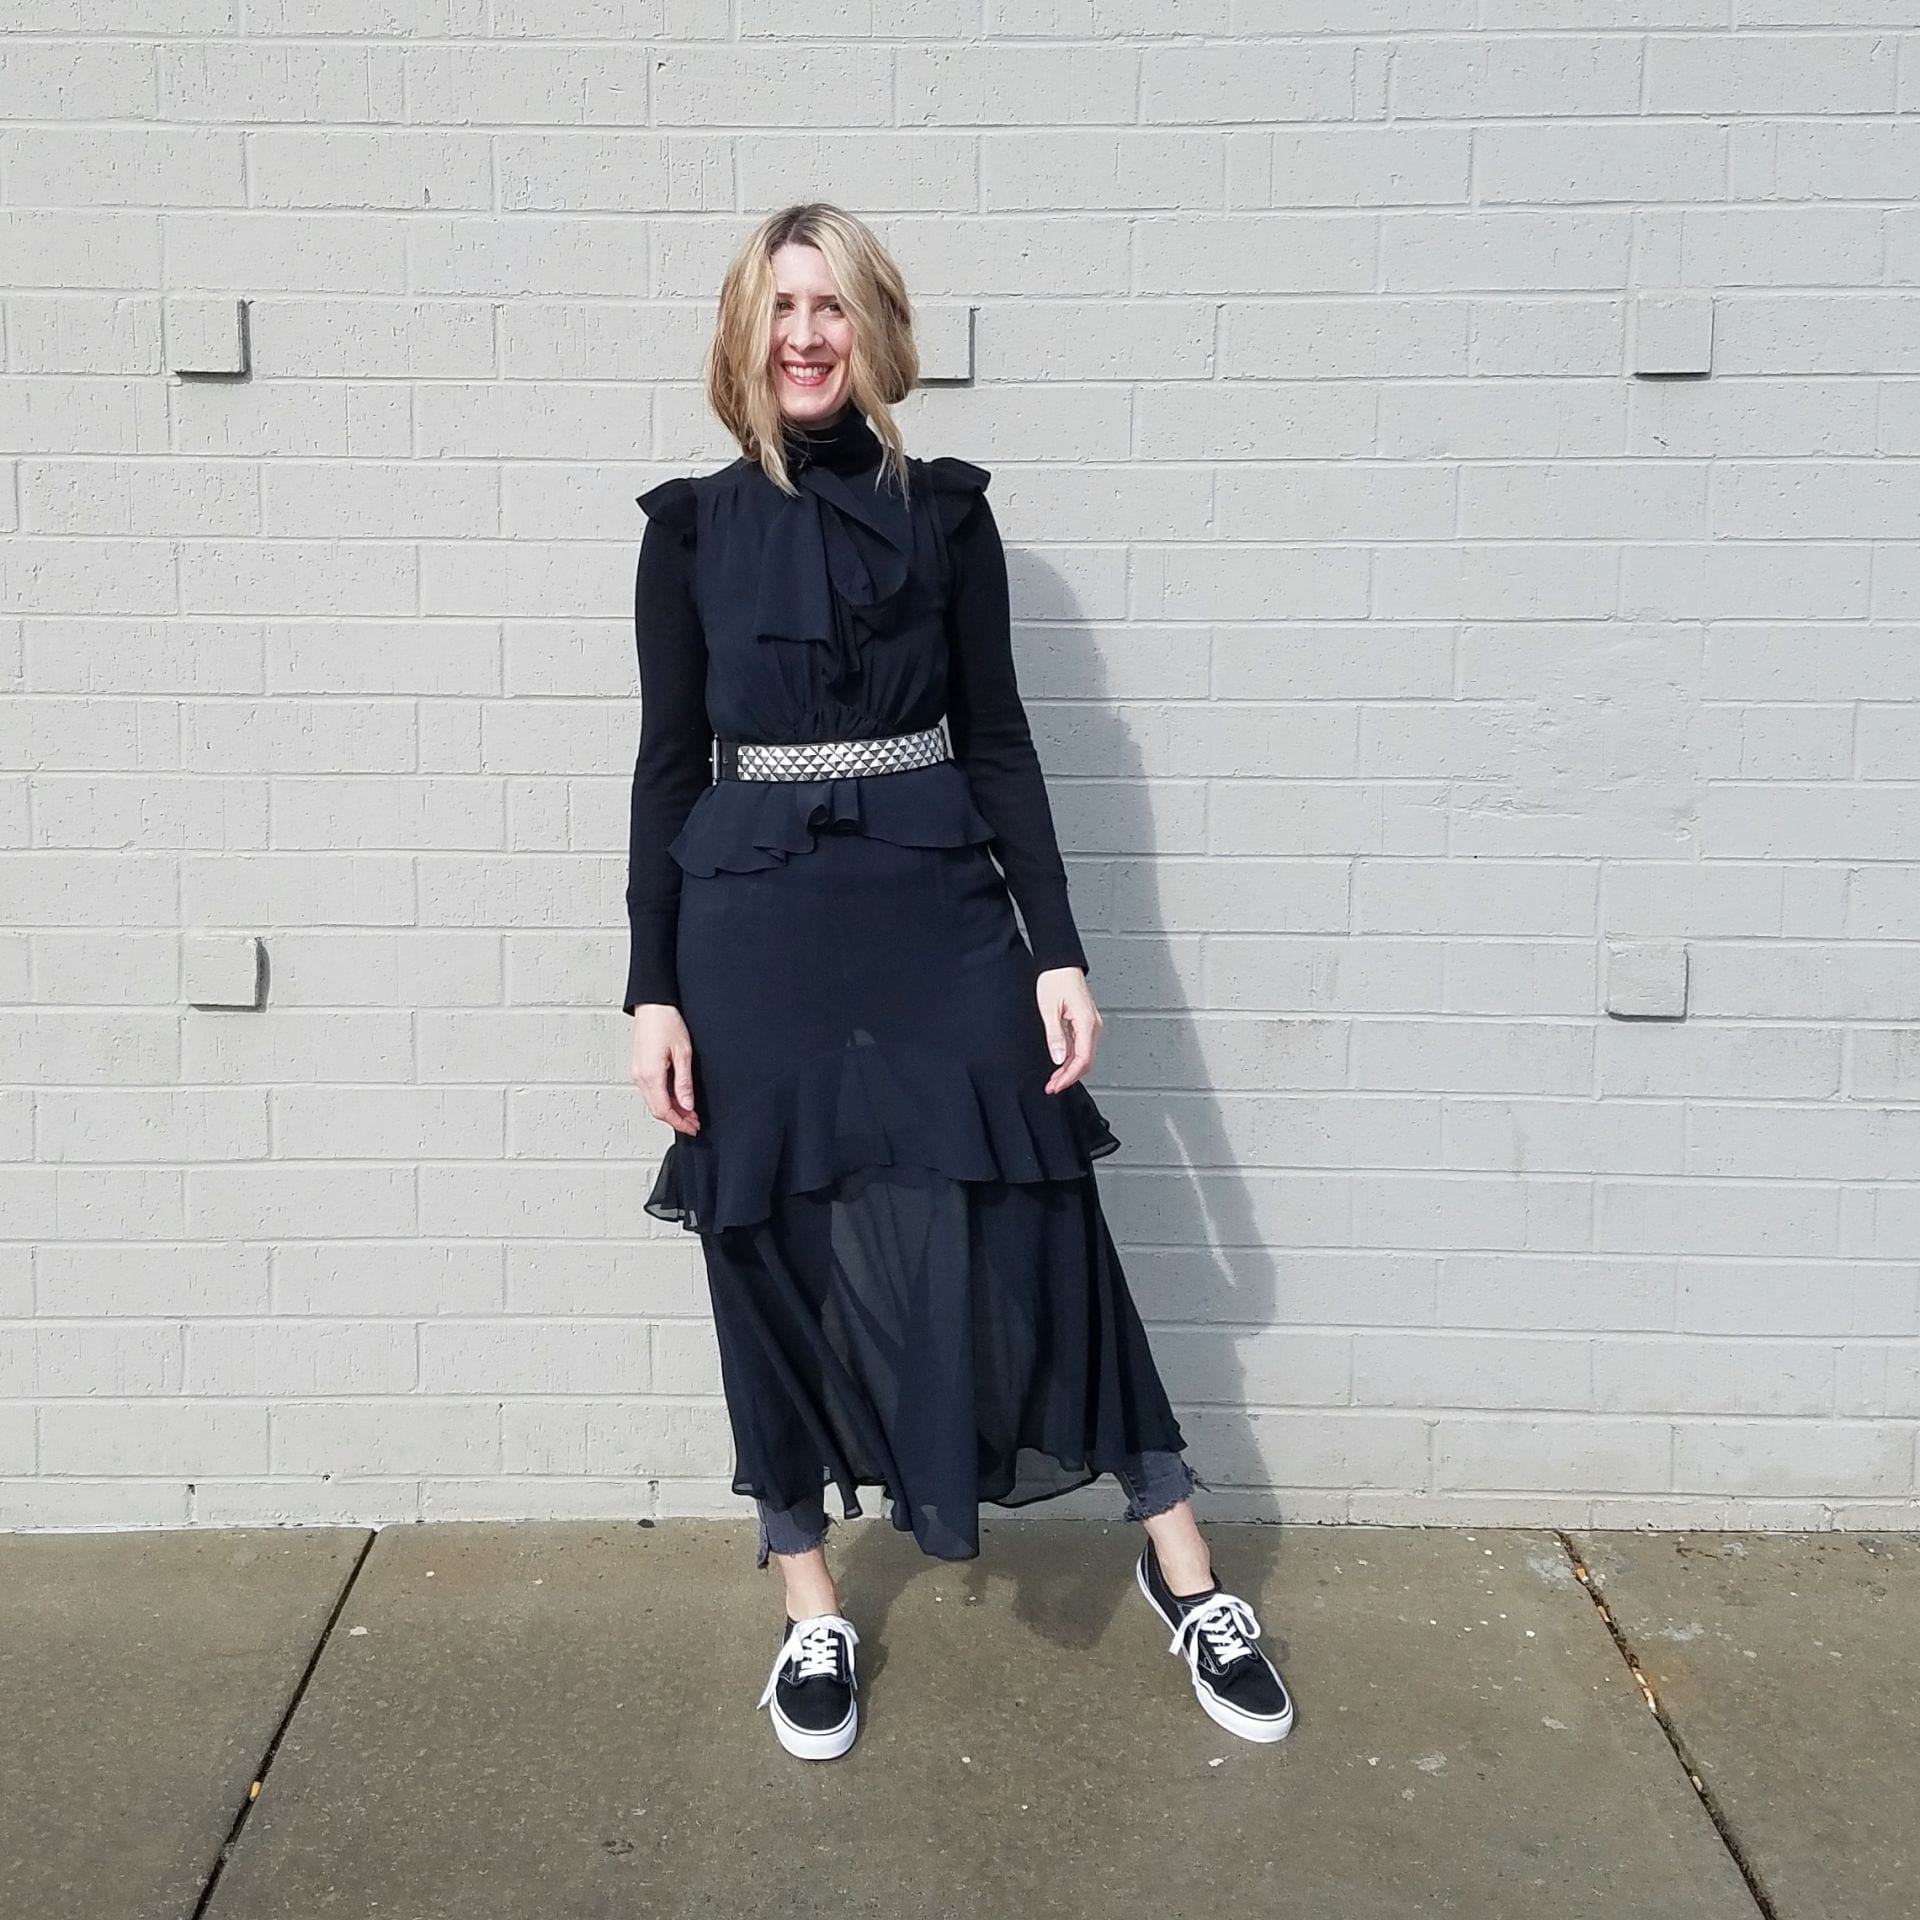 A sheer black dress layered over jans and belted around the waist with a studded belt